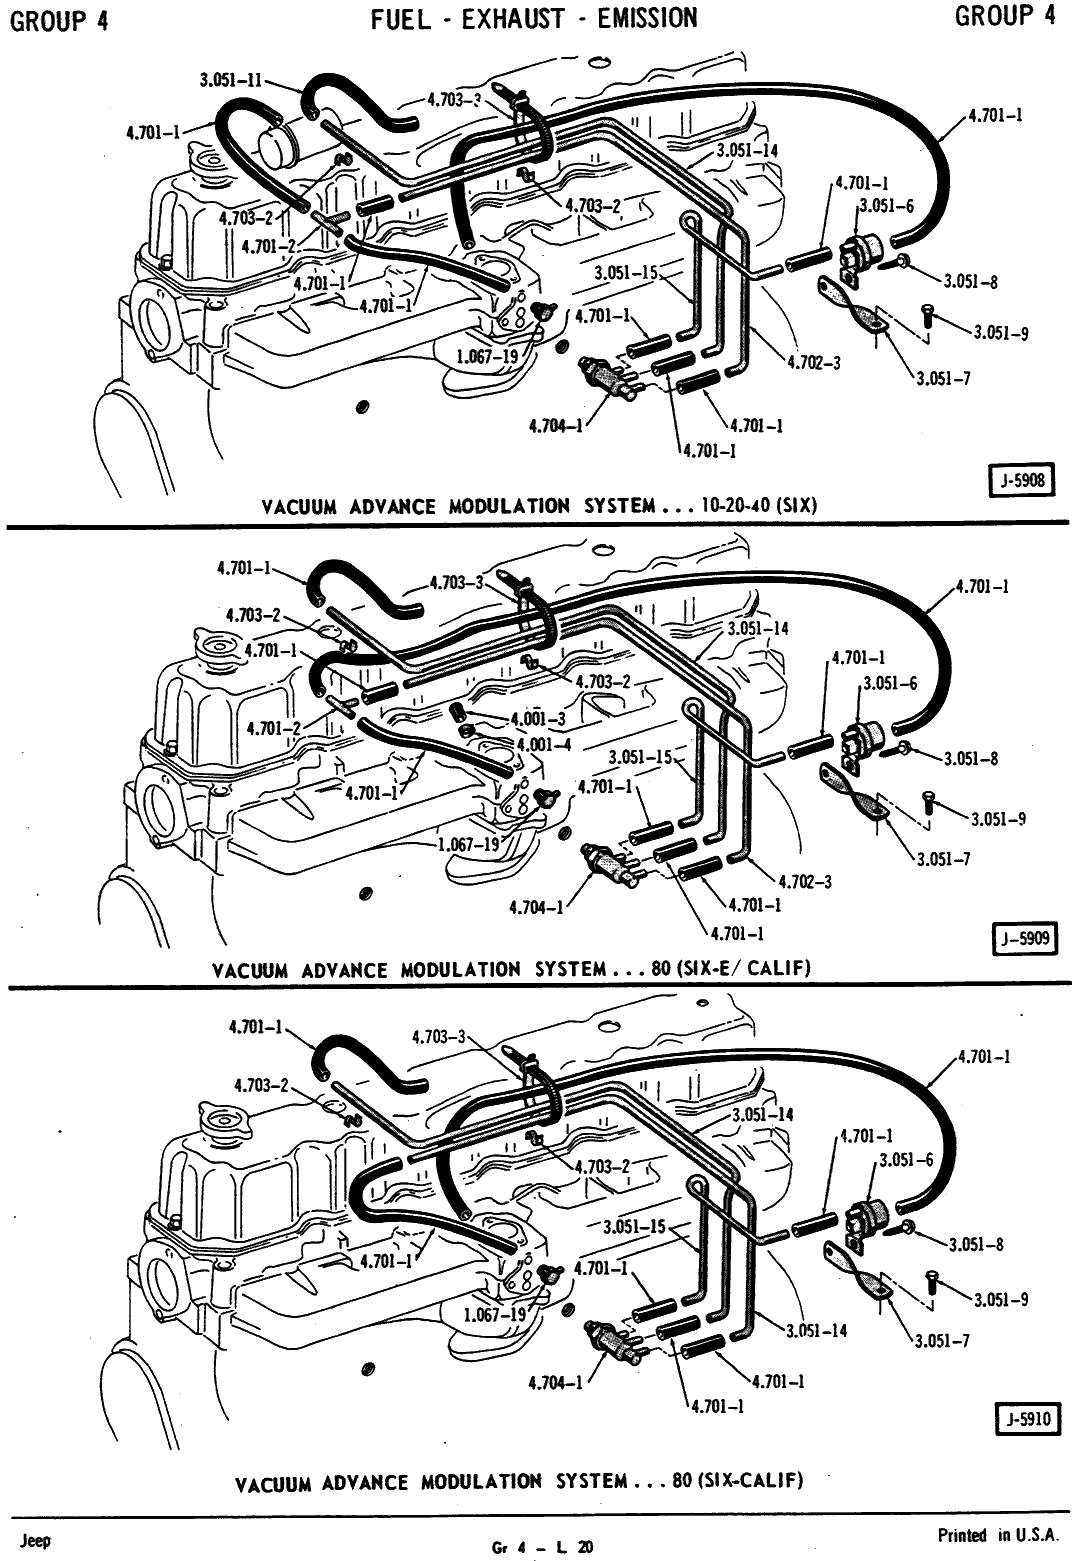 1989 Blazer Wiring Diagram Will Be A Thing Buick Century Transmission Wire Schematic Vacuum Line Routing Chevy Radio S10